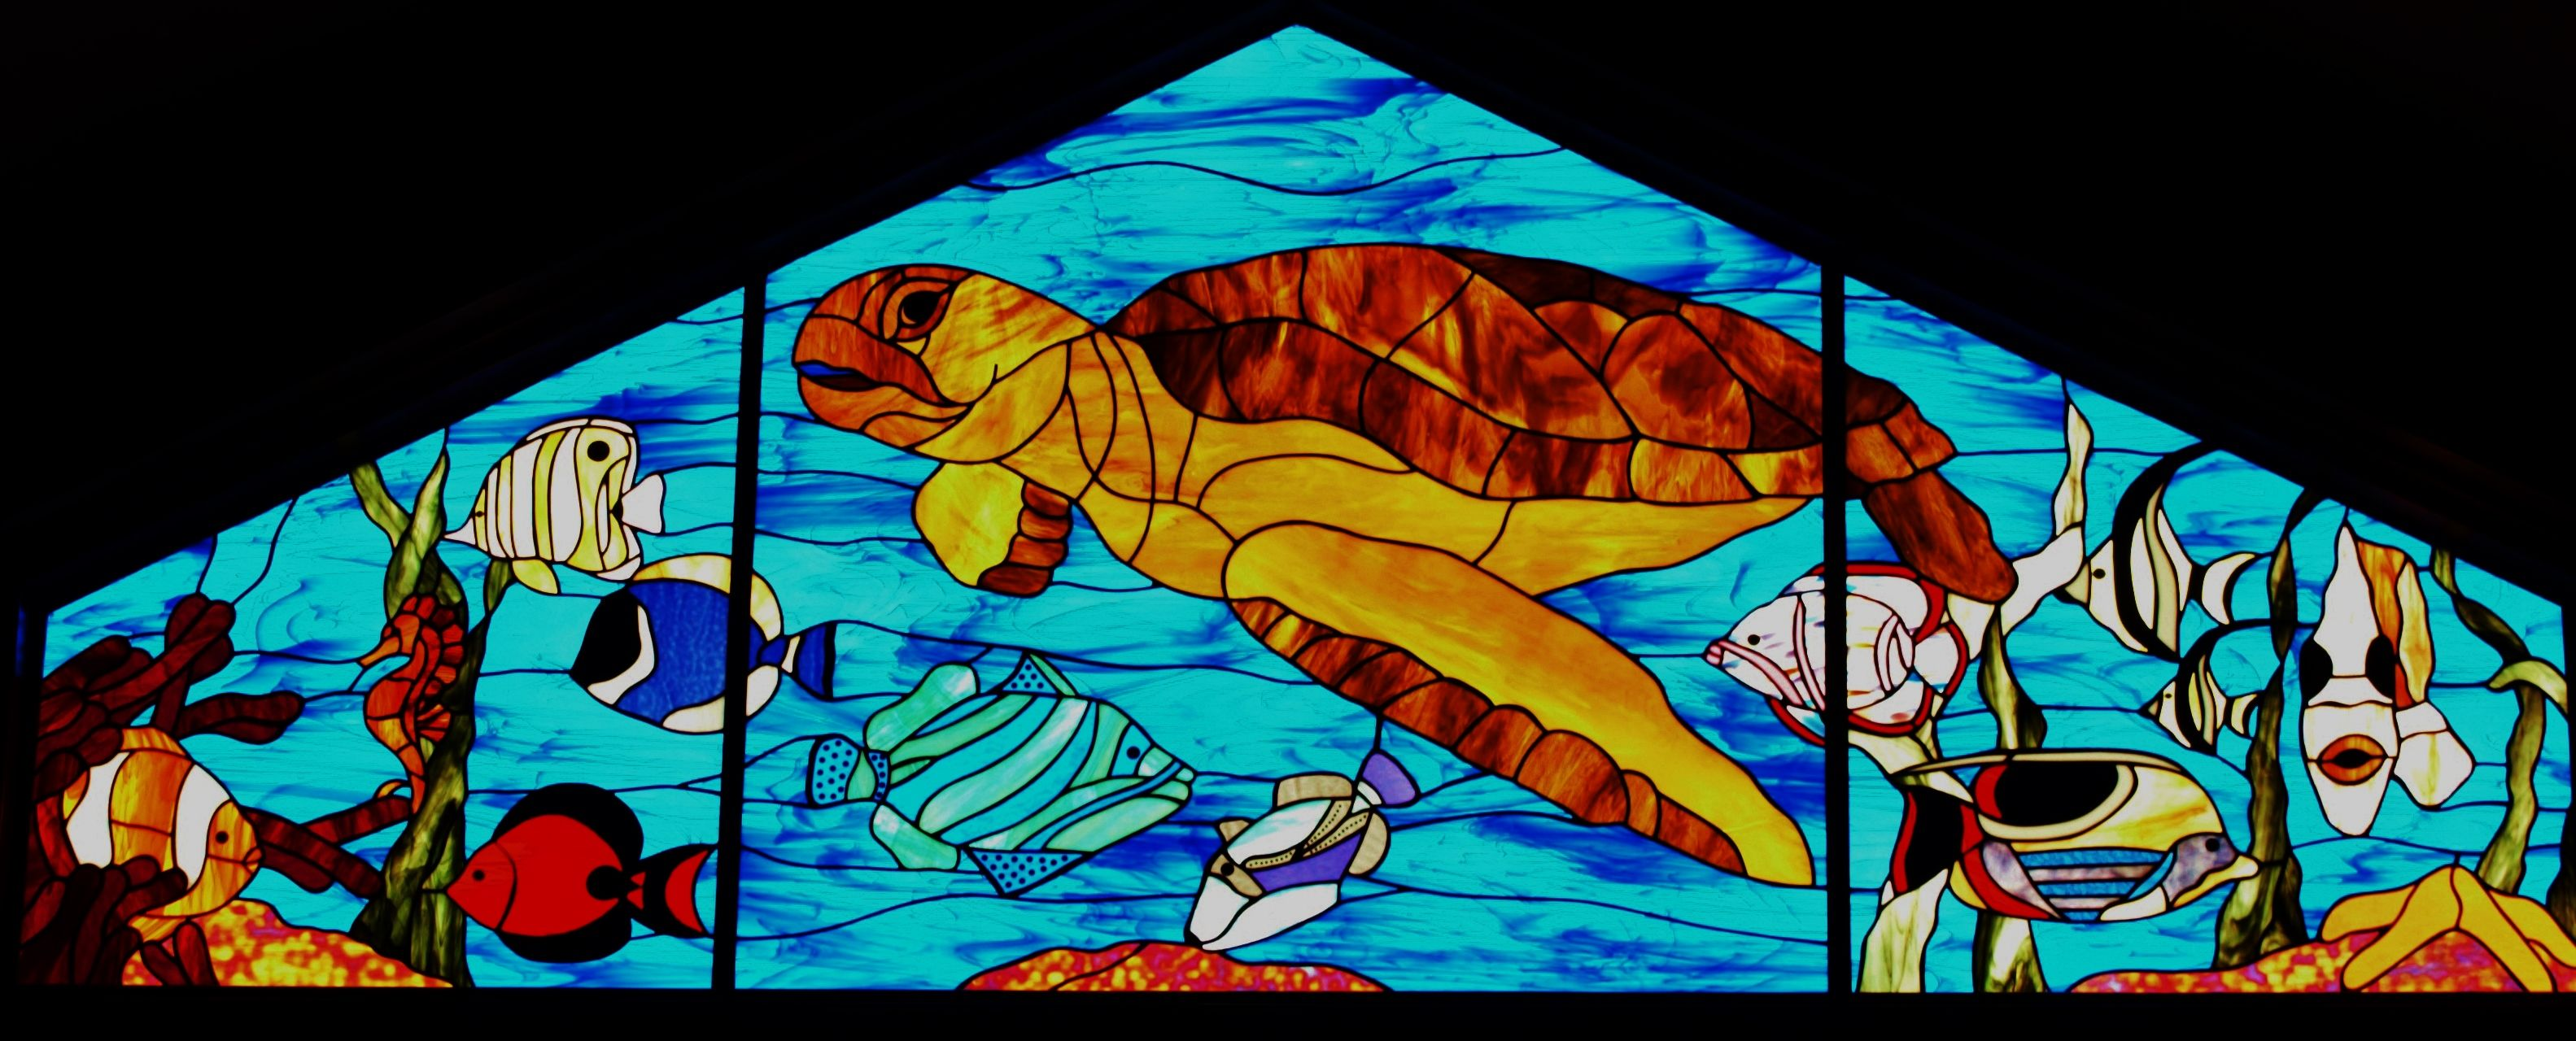 Stained Glass Denver | Stained Glass Windows Colorado | Stained Glass Designs Northern Colorado - Sue Thomas Stained Glass Artist -   beauty Art stained glass